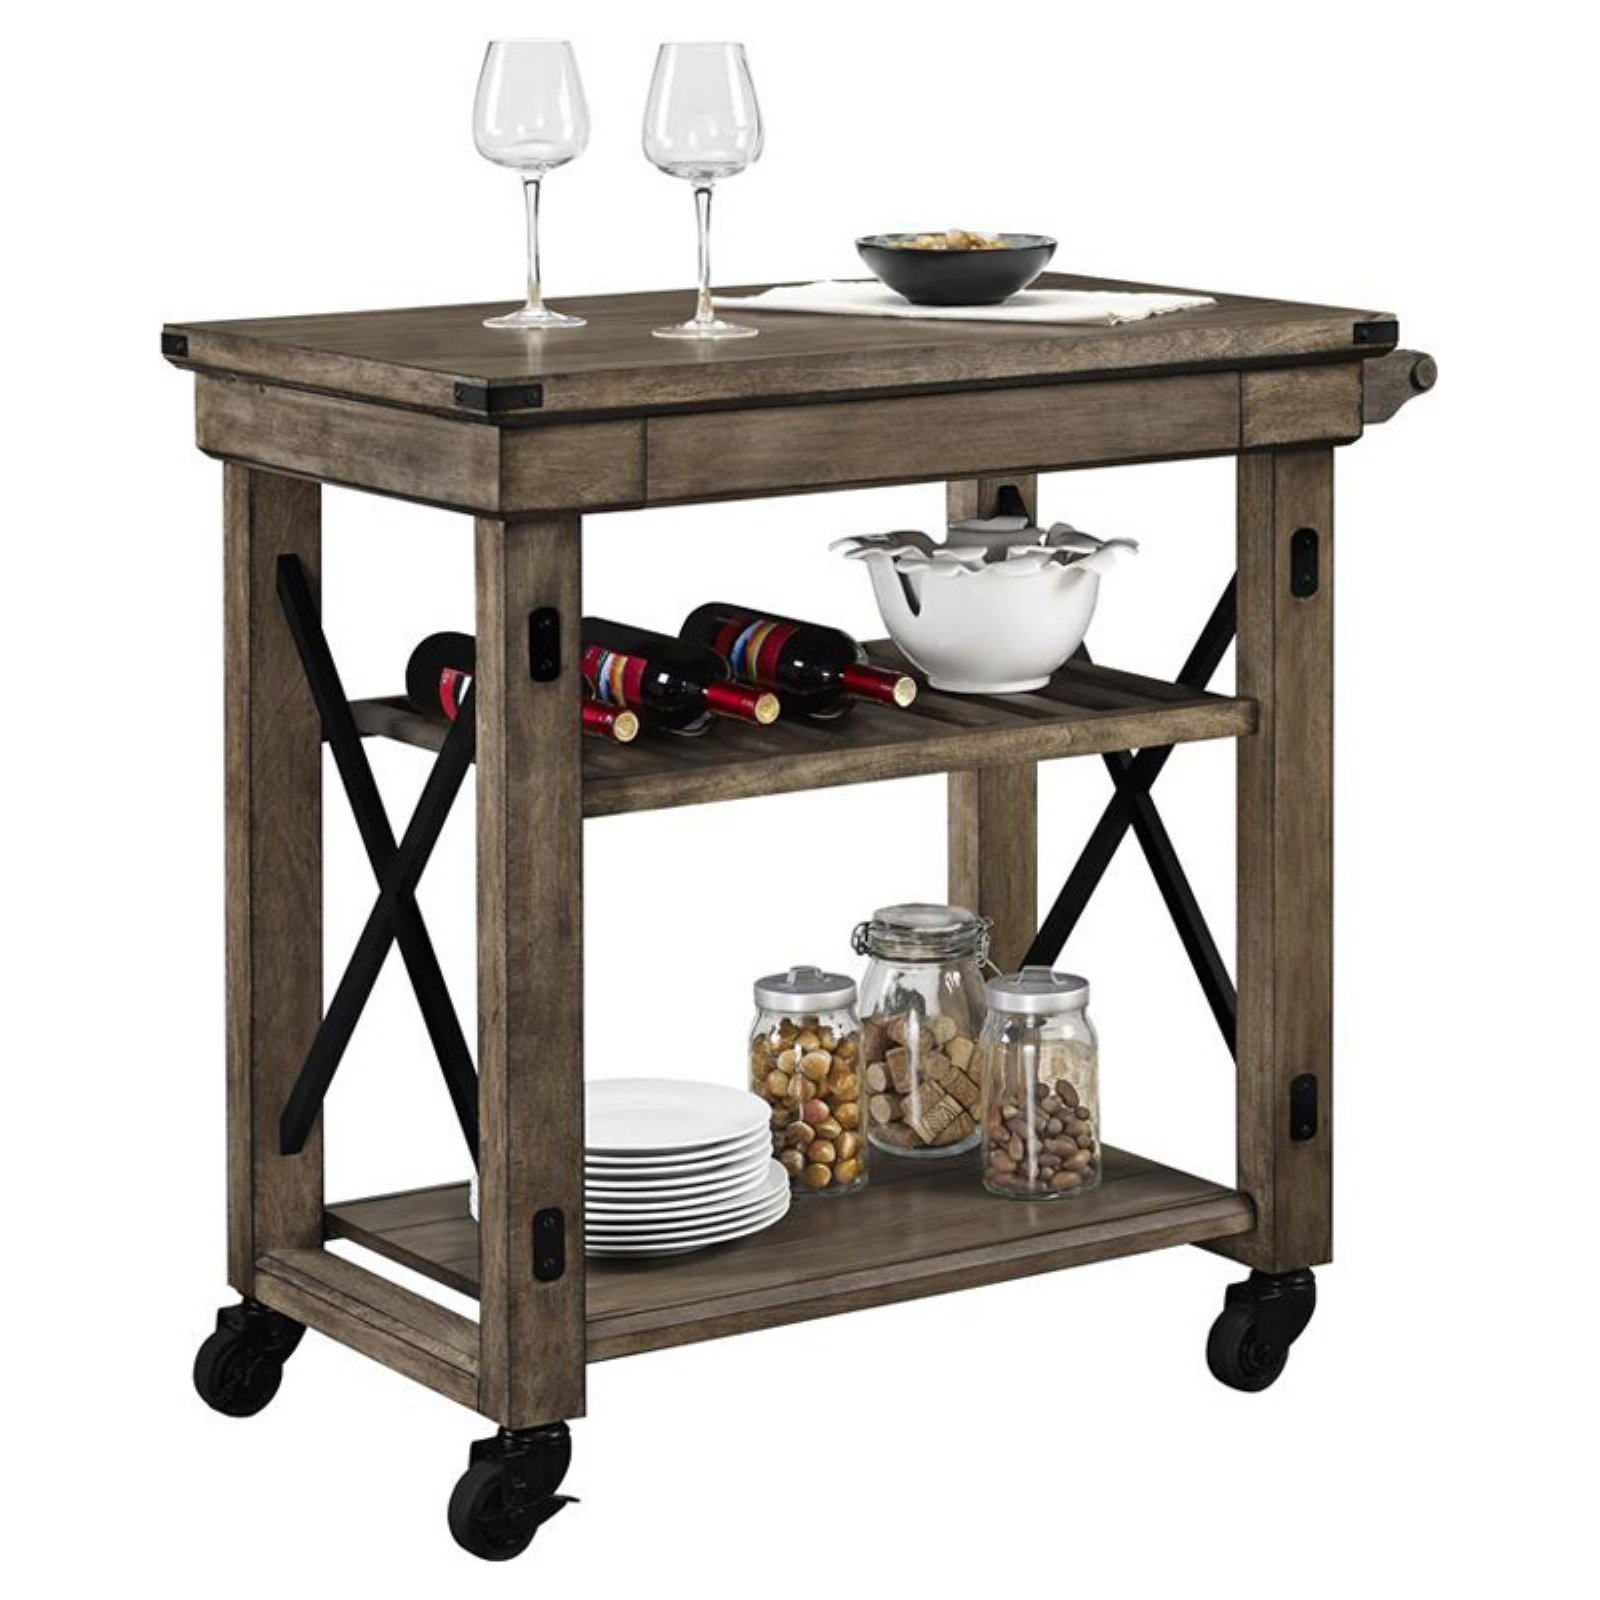 Altra Furniture Altra Wildwood Wood Veneer Multi-Purpose Rolling Cart - Rustic Gray